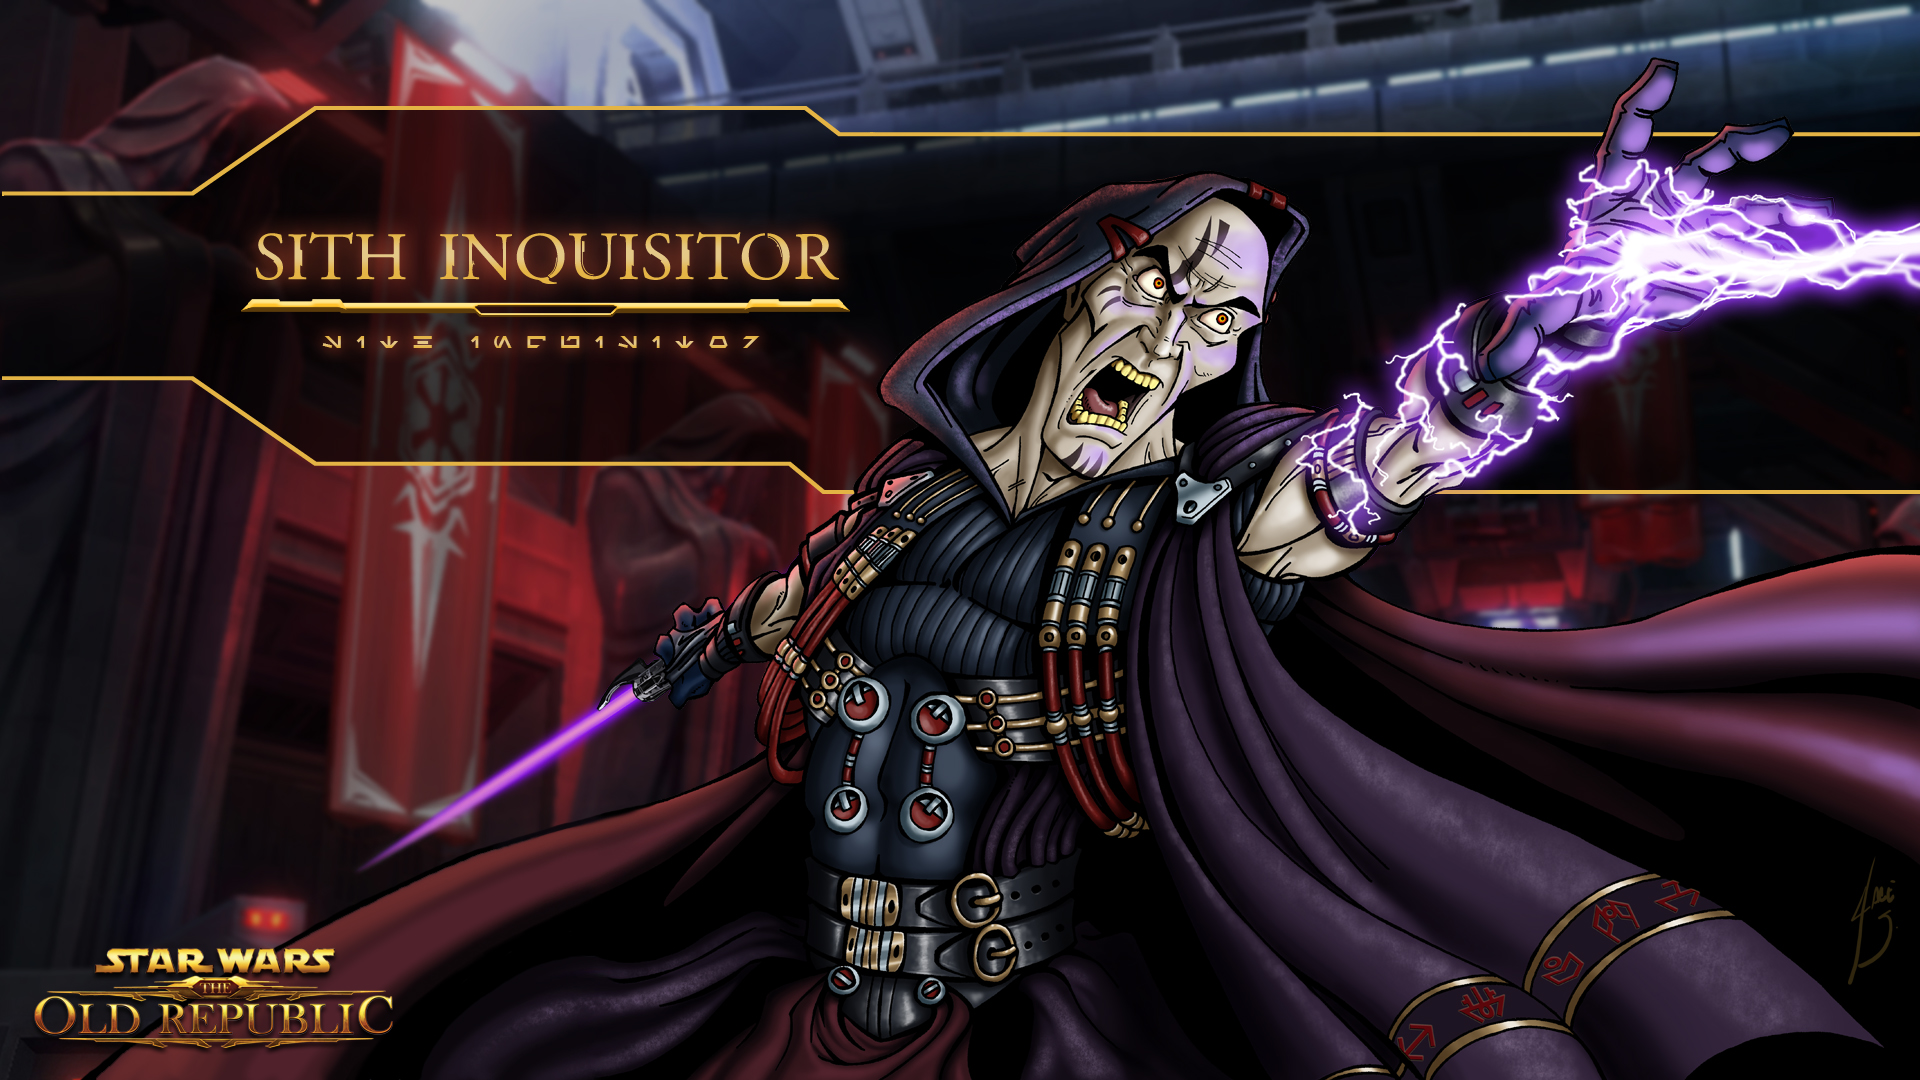 swtor sith inquisitor class story summary � star wars